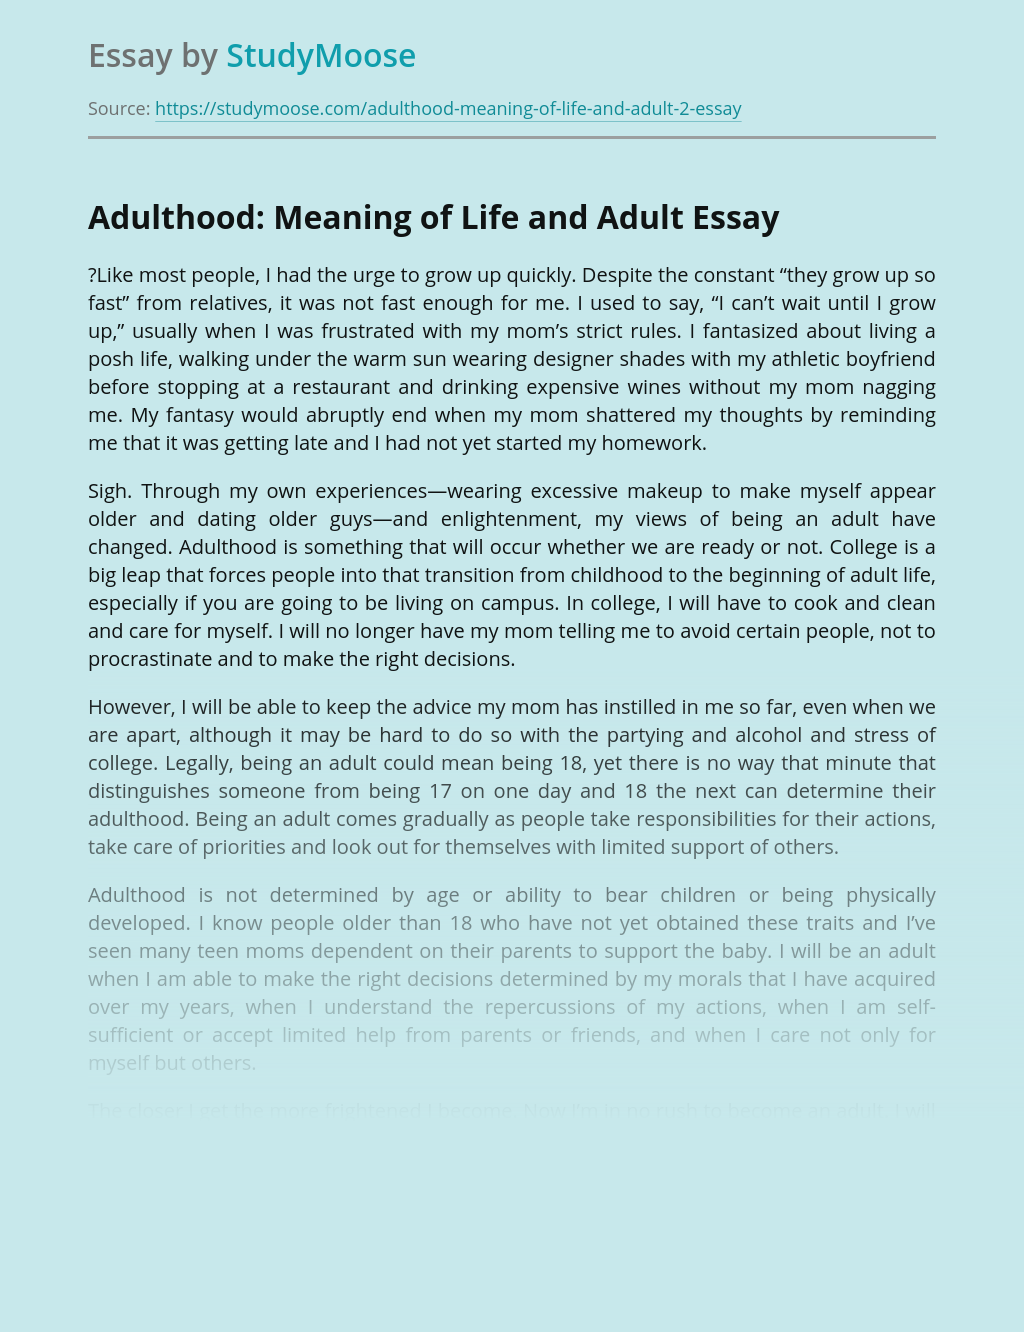 Adulthood: Meaning of Life and Adult